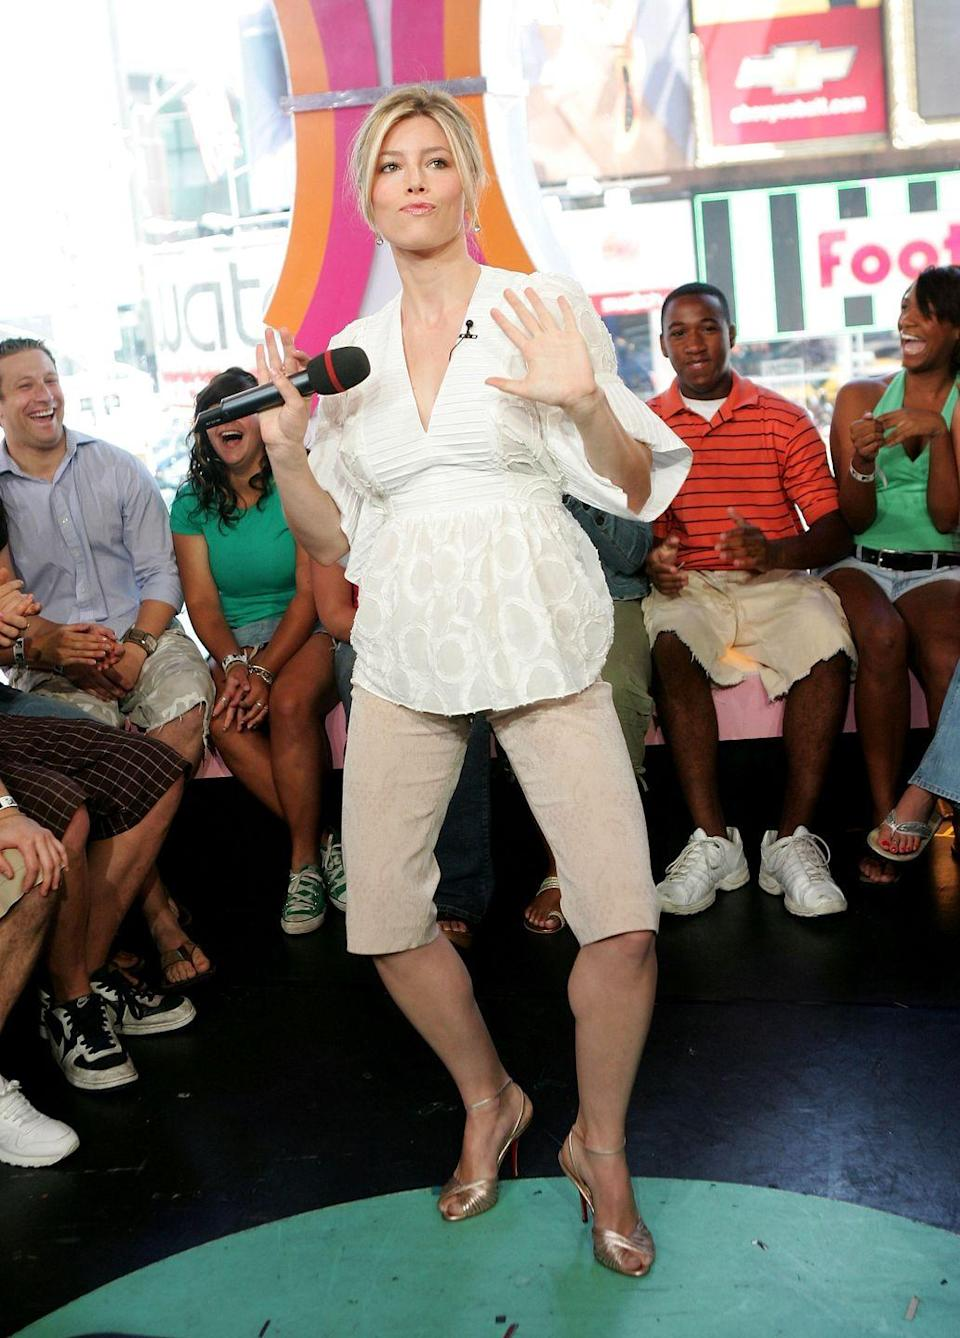 <p>Should I just say it? That looks like a maternity top and Jessica Biel looks like she's getting ready to push.</p>